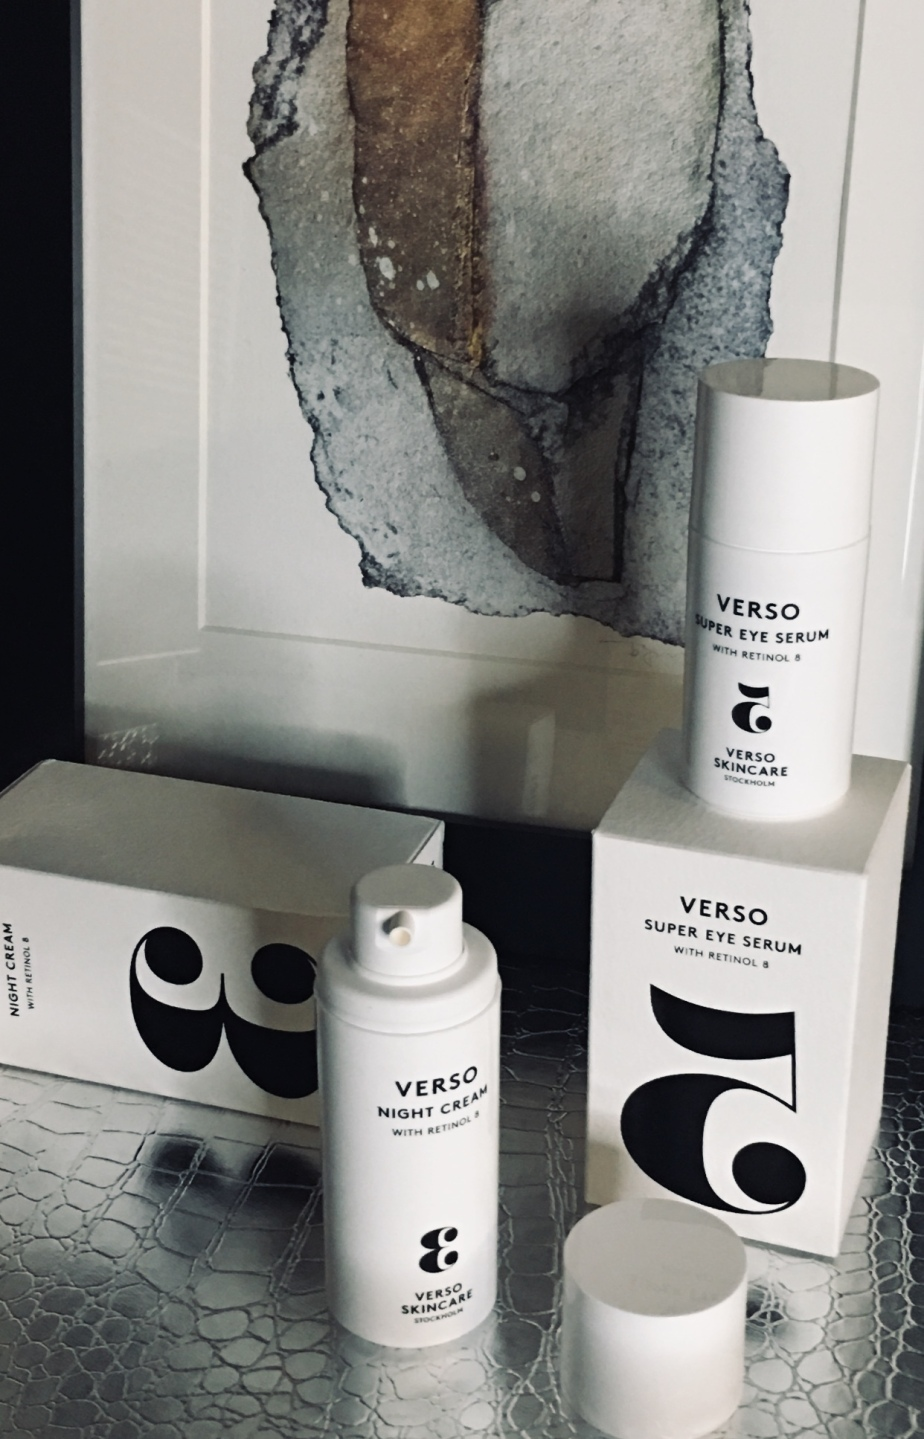 A Review of Verso Skincare